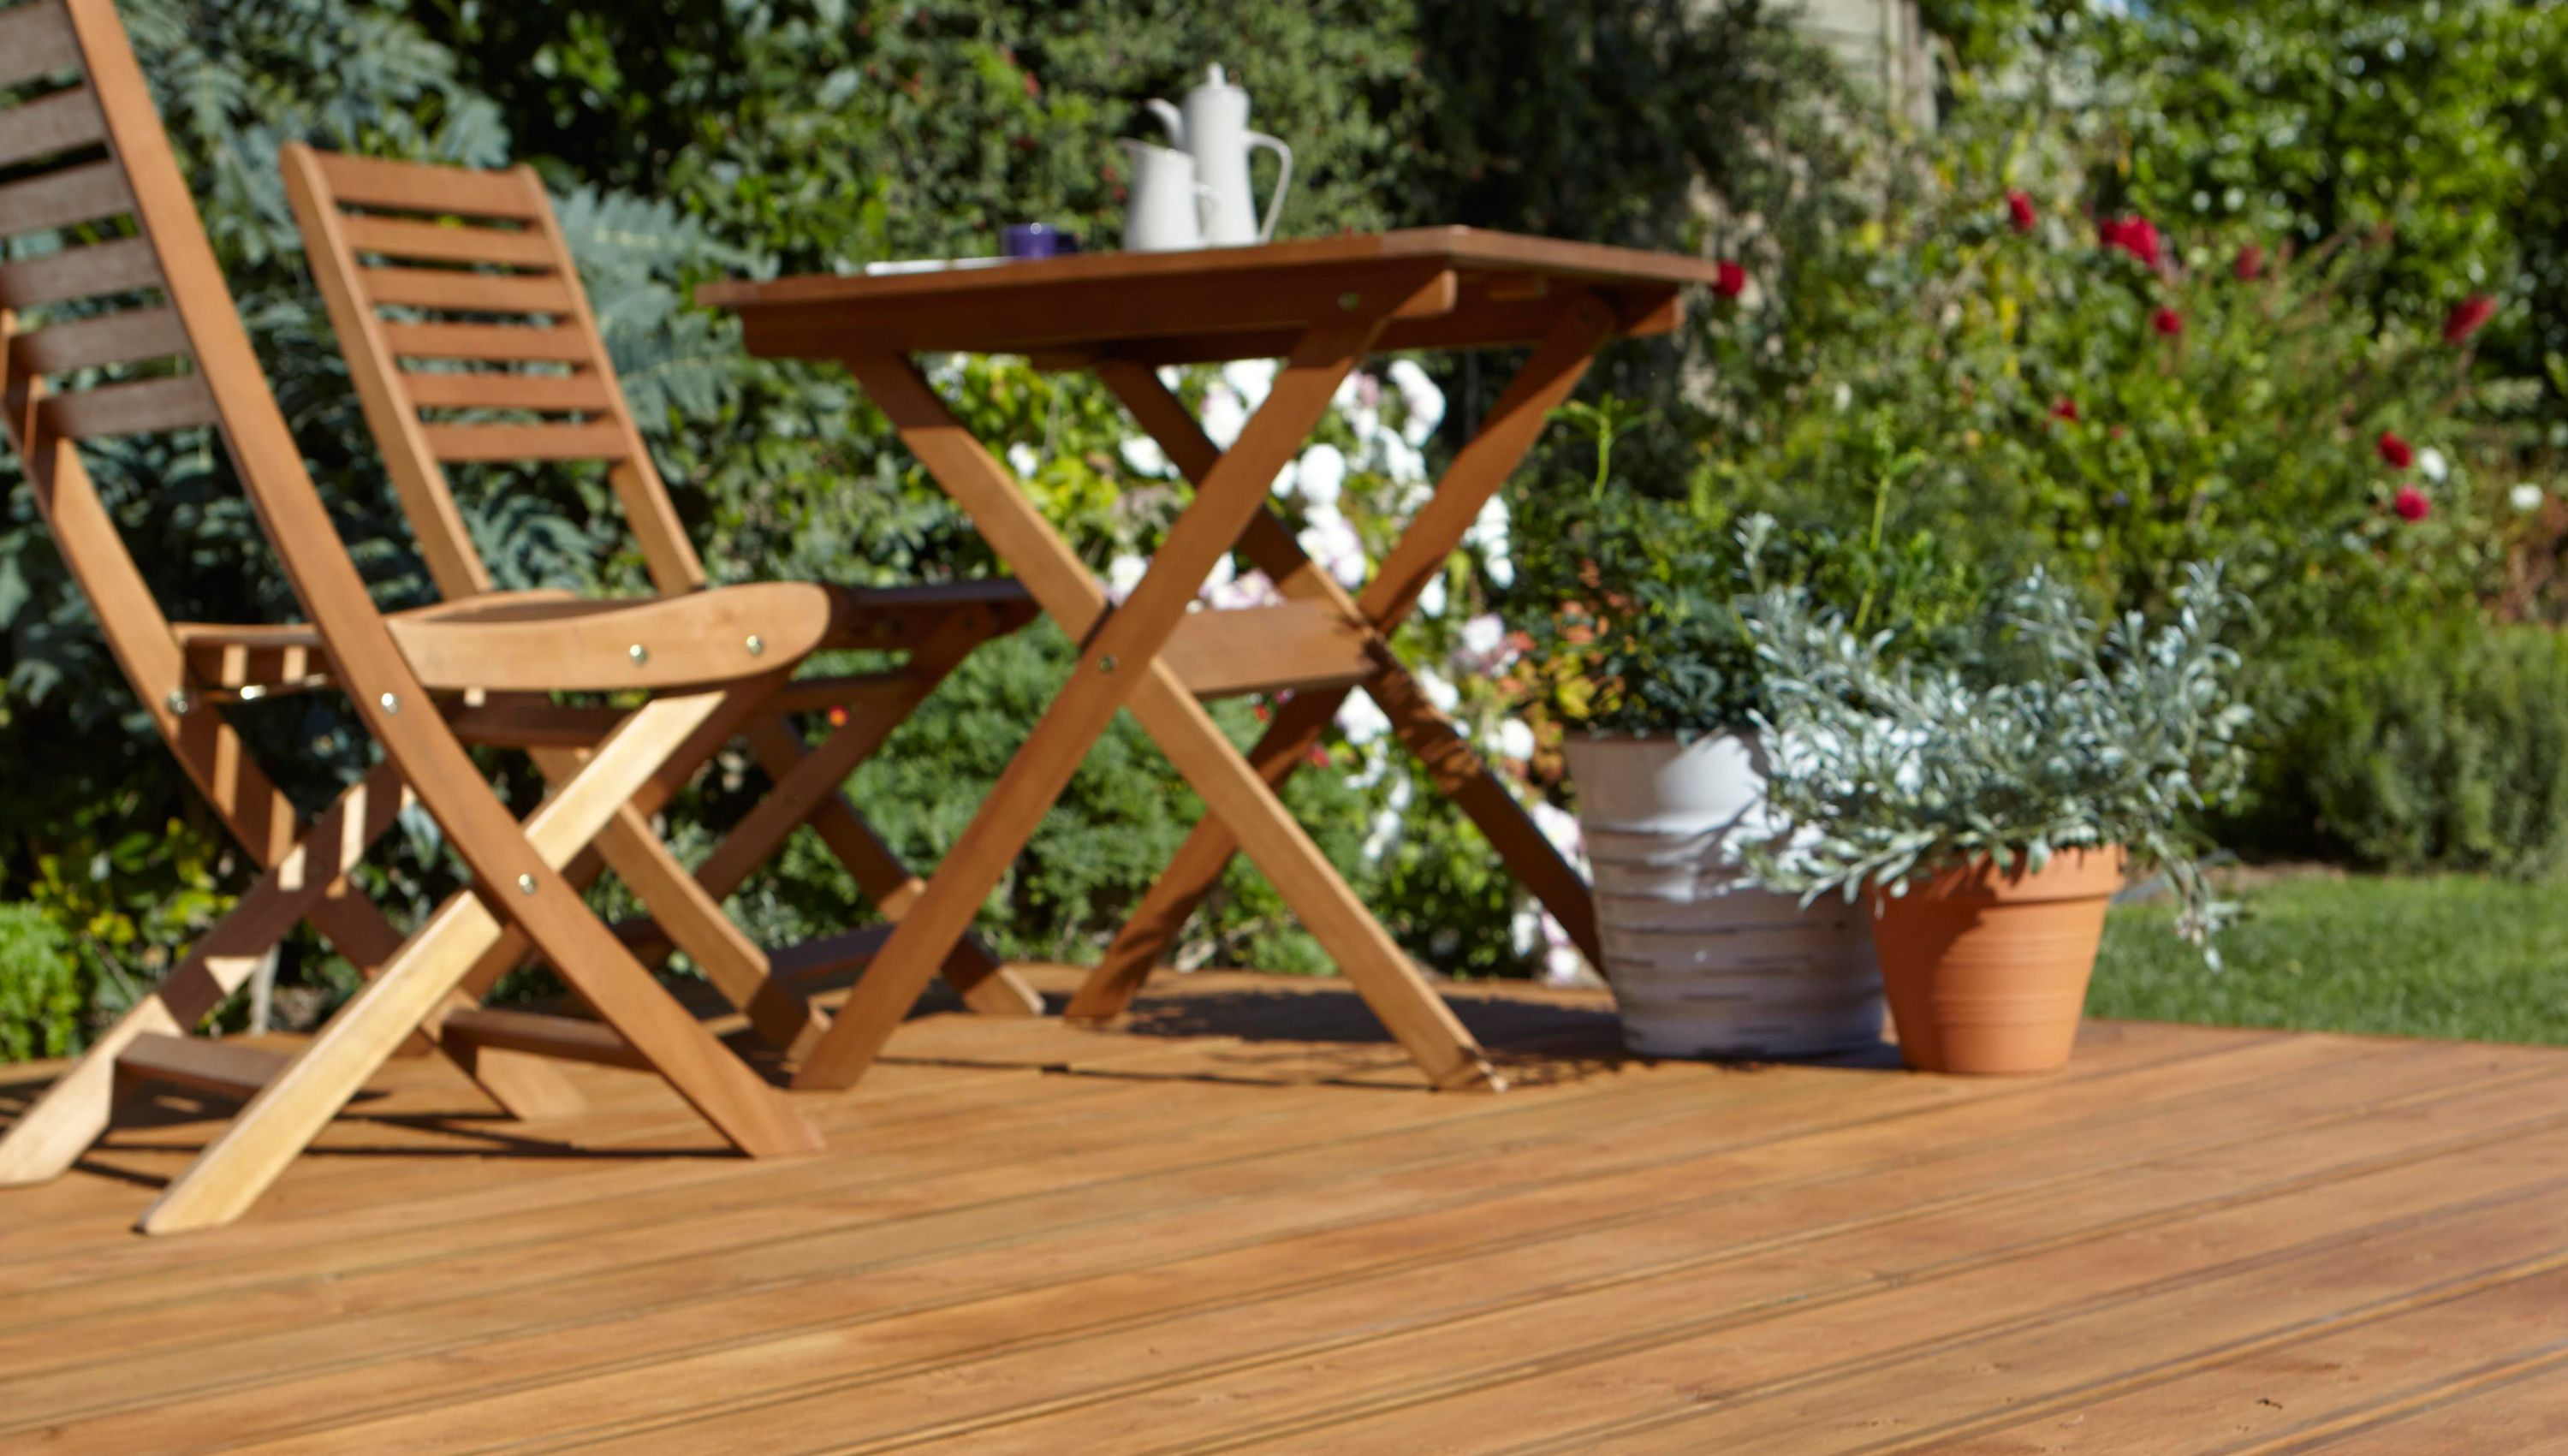 How to build a basic ground level deck ideas advice for Flat pack garden decking